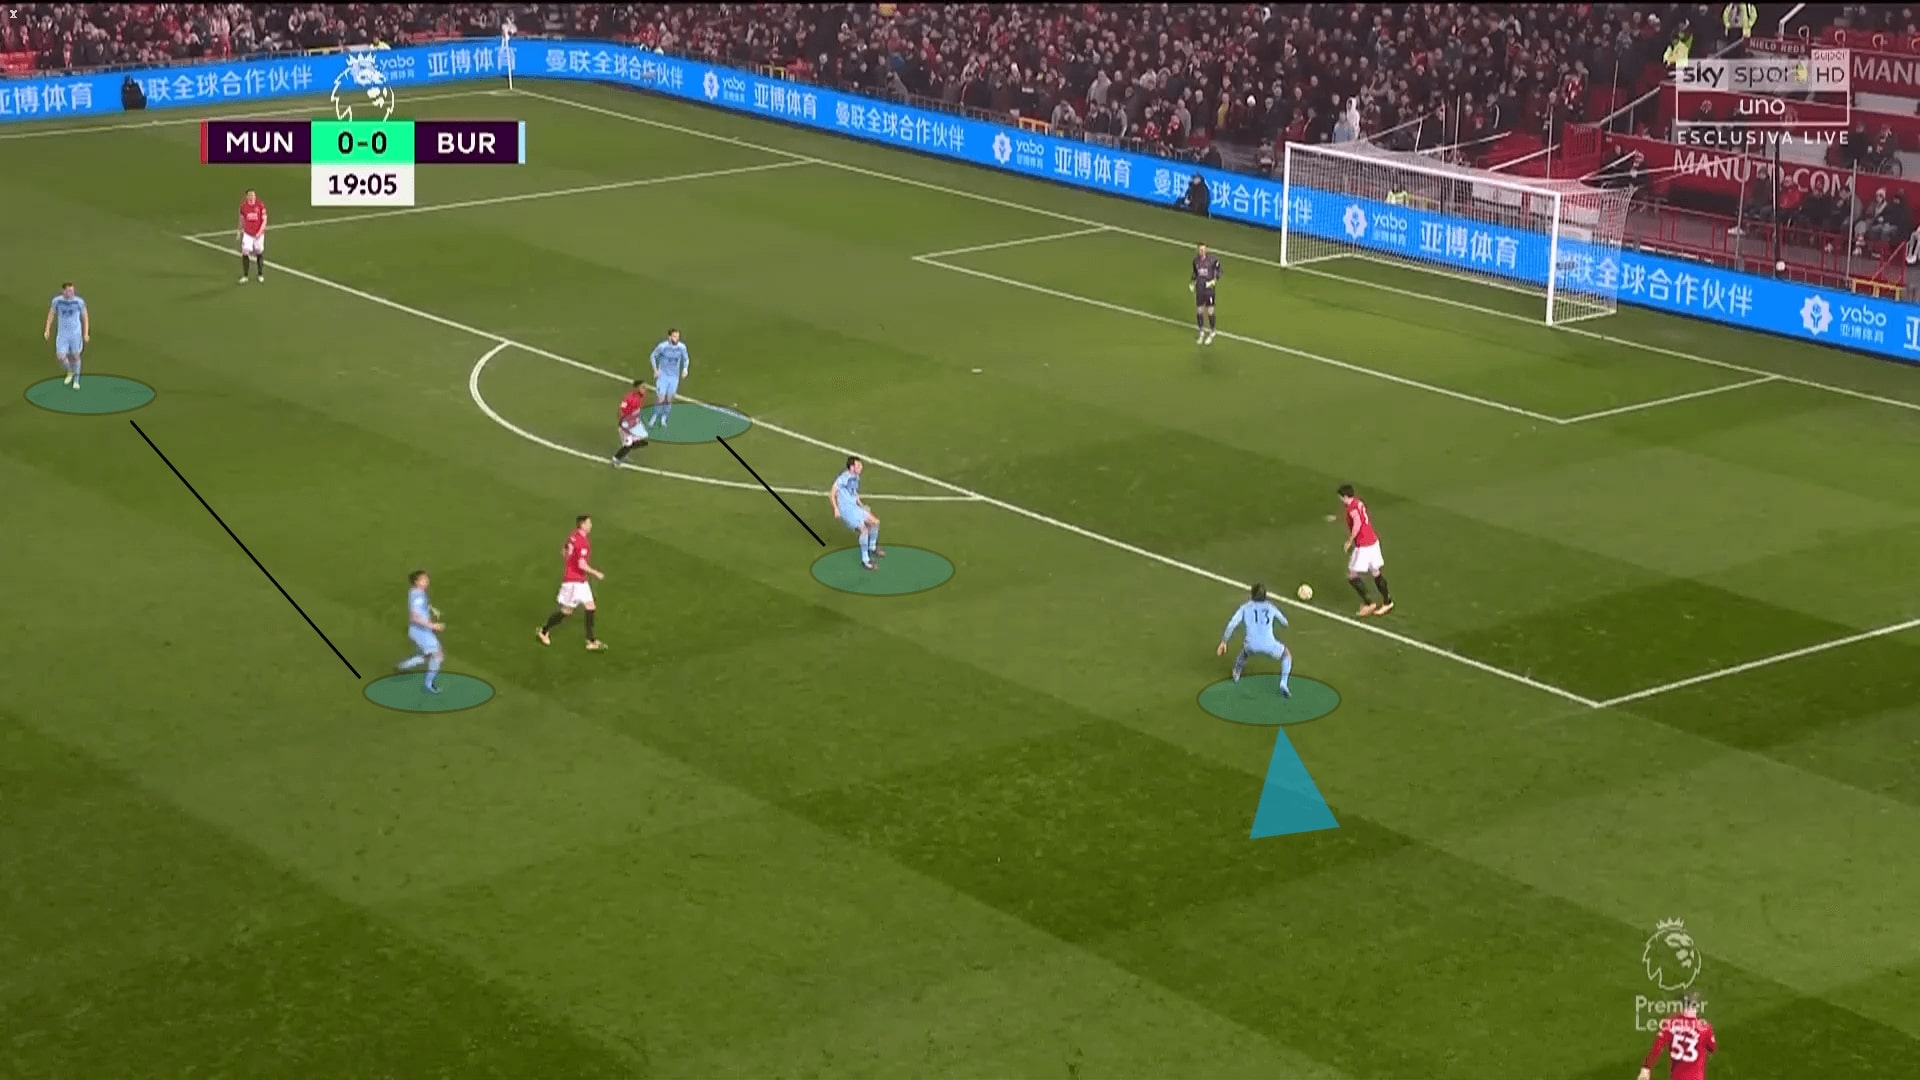 Premier League 2019/20: Manchester United vs Burnley - tactical analysis tactics